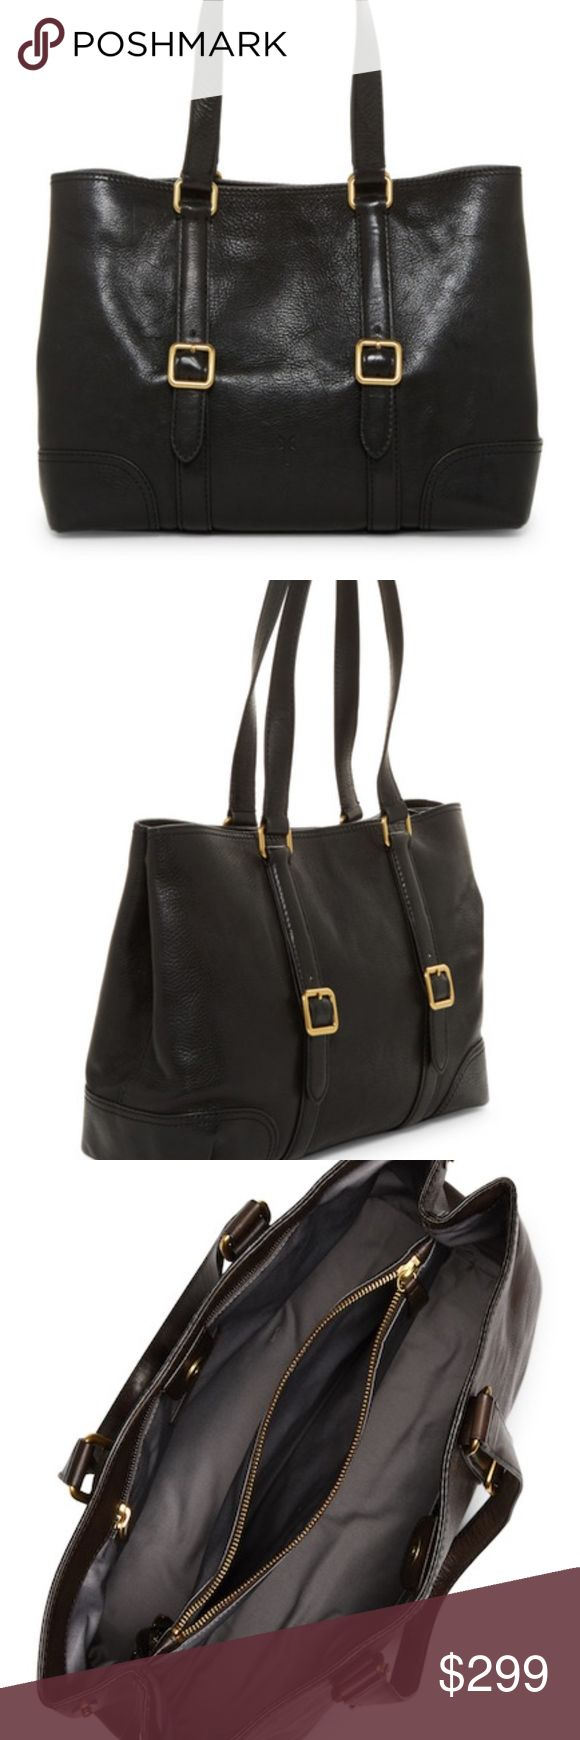 Frye Claude Black Leather Tote Bag Details Tumbled, full-grain Italian leather enhances the polished look of a spacious tote with plenty of room for electronics, books or a water bottle. A buckled-strap detail with antiqued brass hardware lends vintage charm. - Dual top handles - Magnetic snap-tab closure - Exterior features adjustable buckle details and metal feet - Interior 1 zip divider, 2 compartments, 1 zip wall pocket and 2 media pockets, and 1 key clip - Imported Materials Leather…